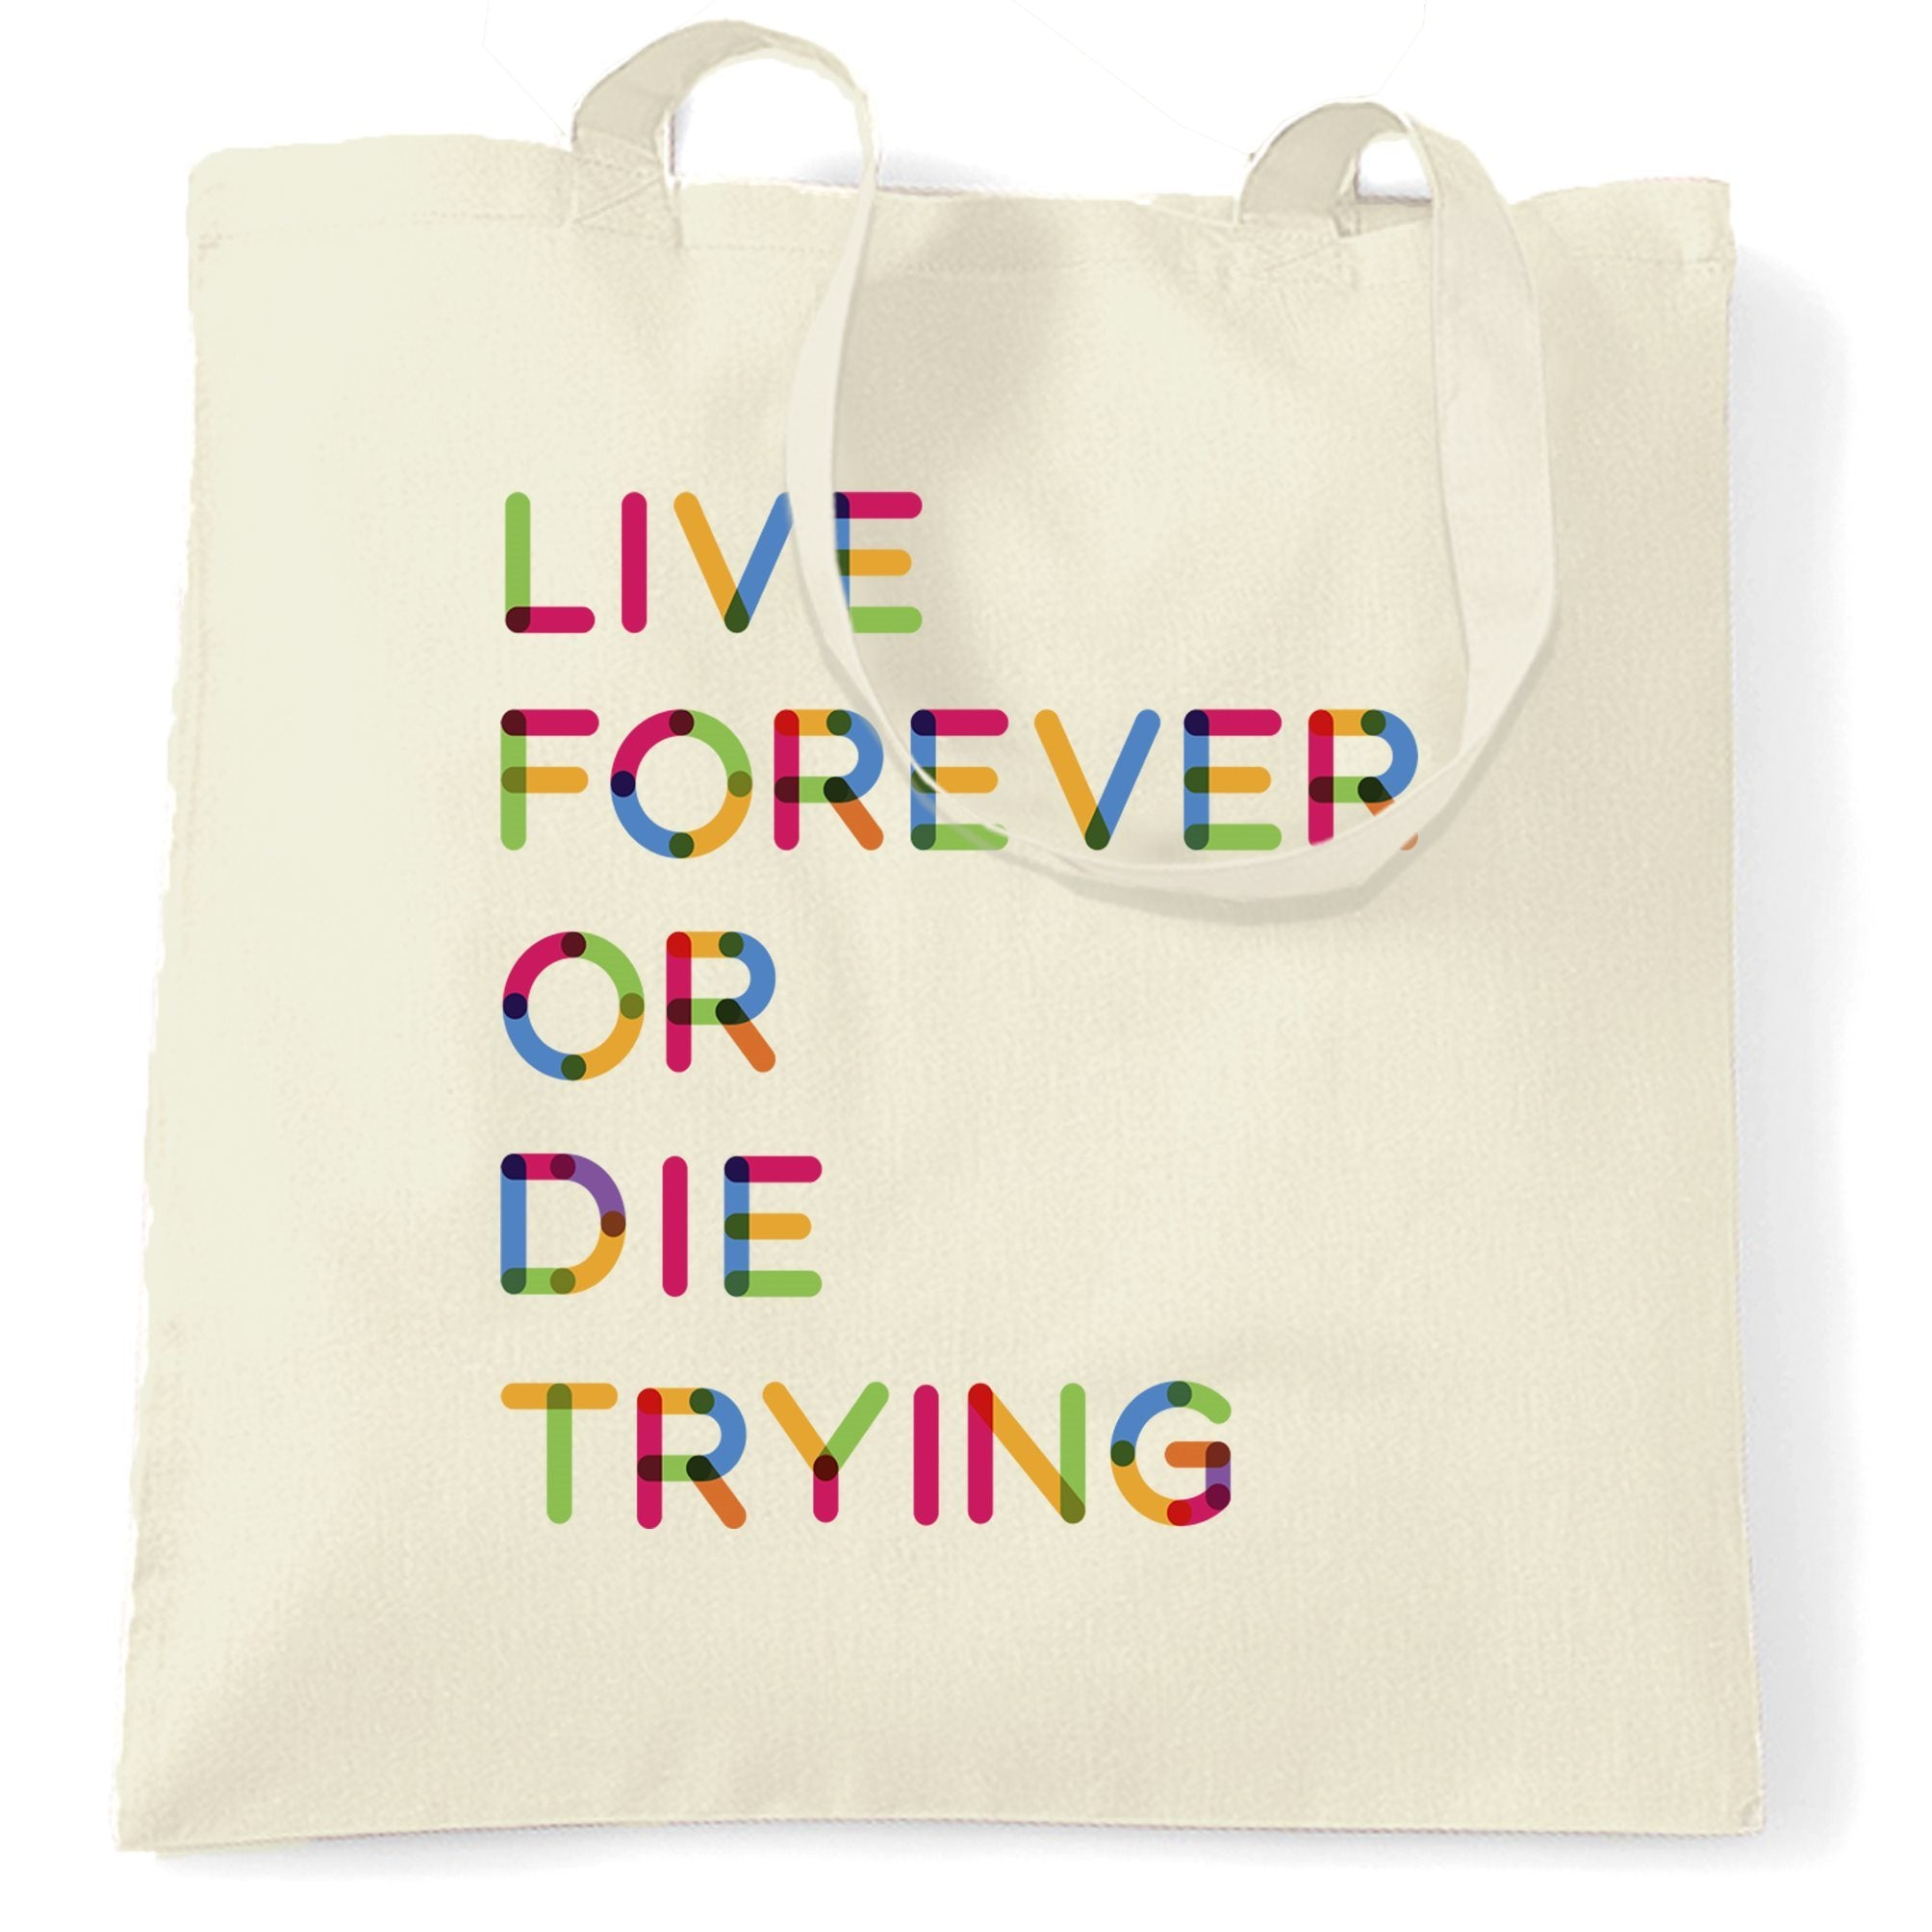 Inspirational Tote Bag Live Forever Or Die Trying